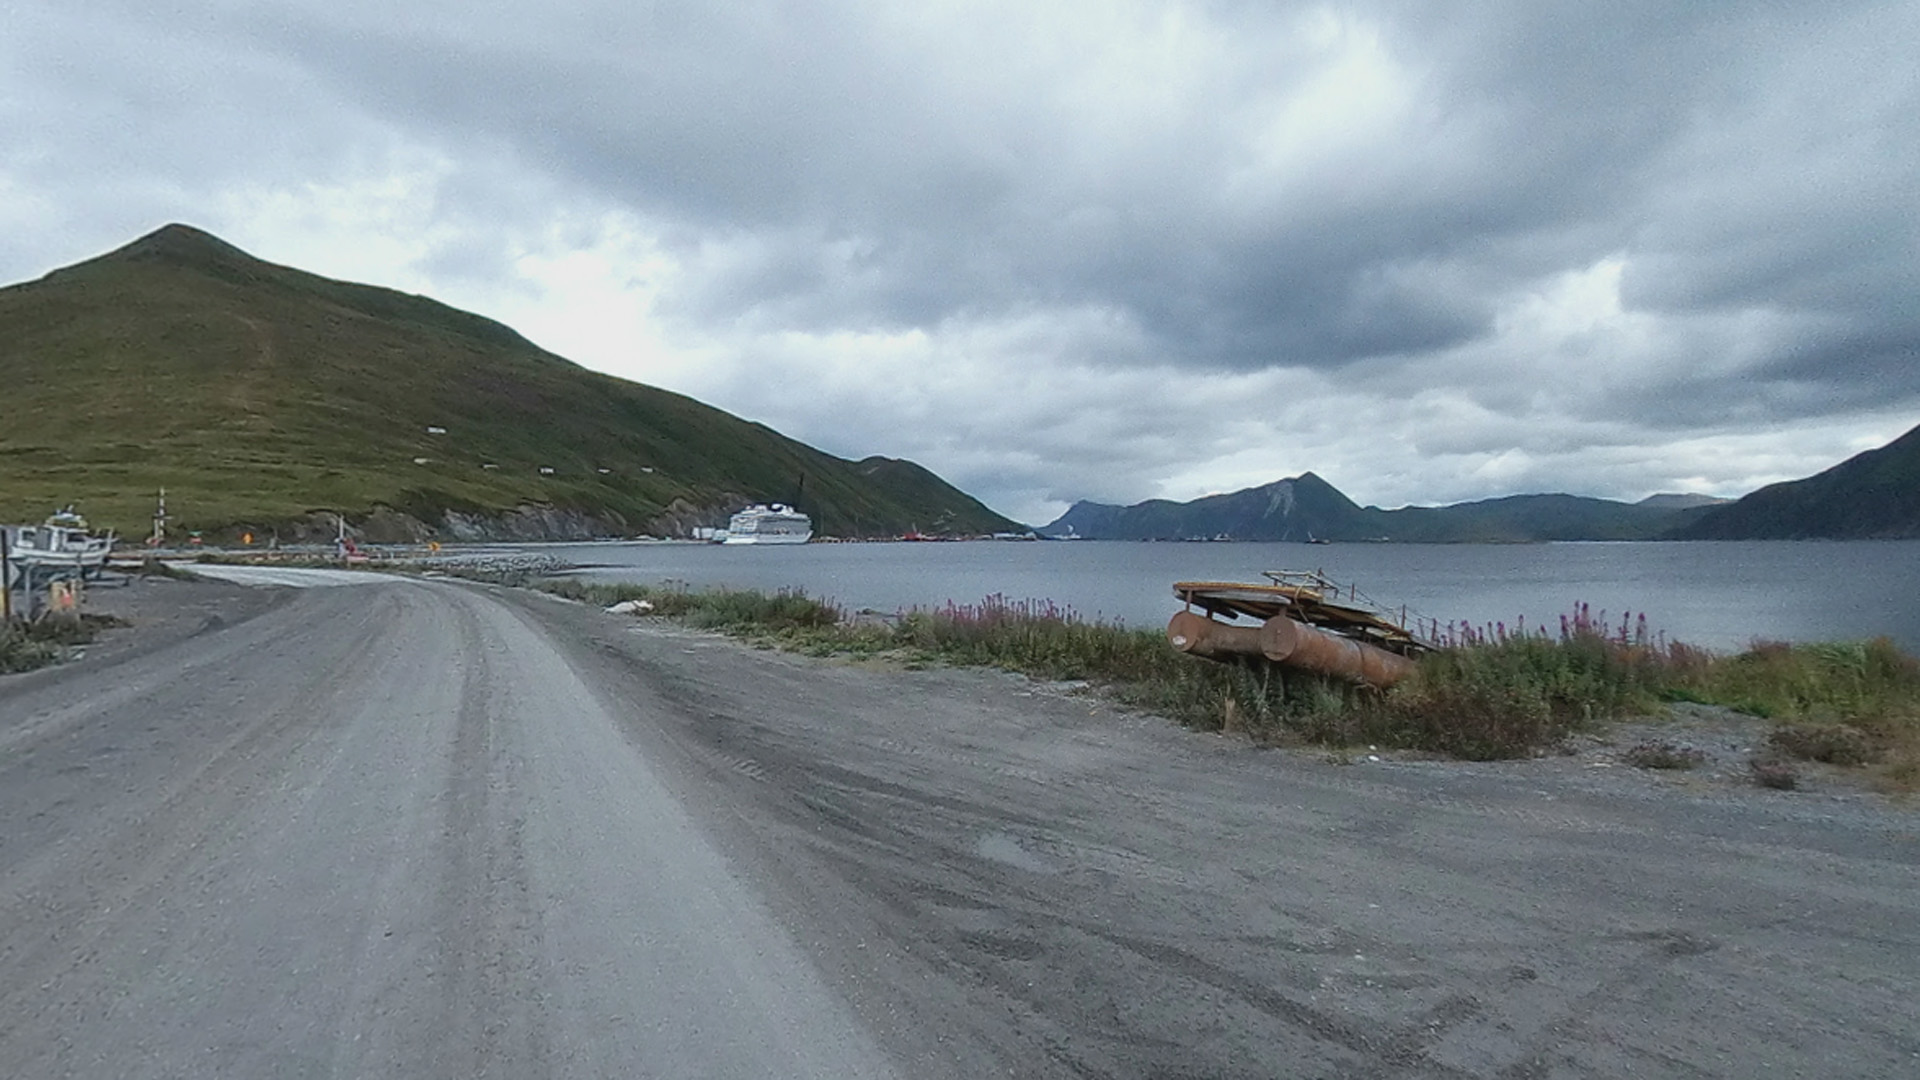 Dutch Harbor is seen in this image from Google Maps.